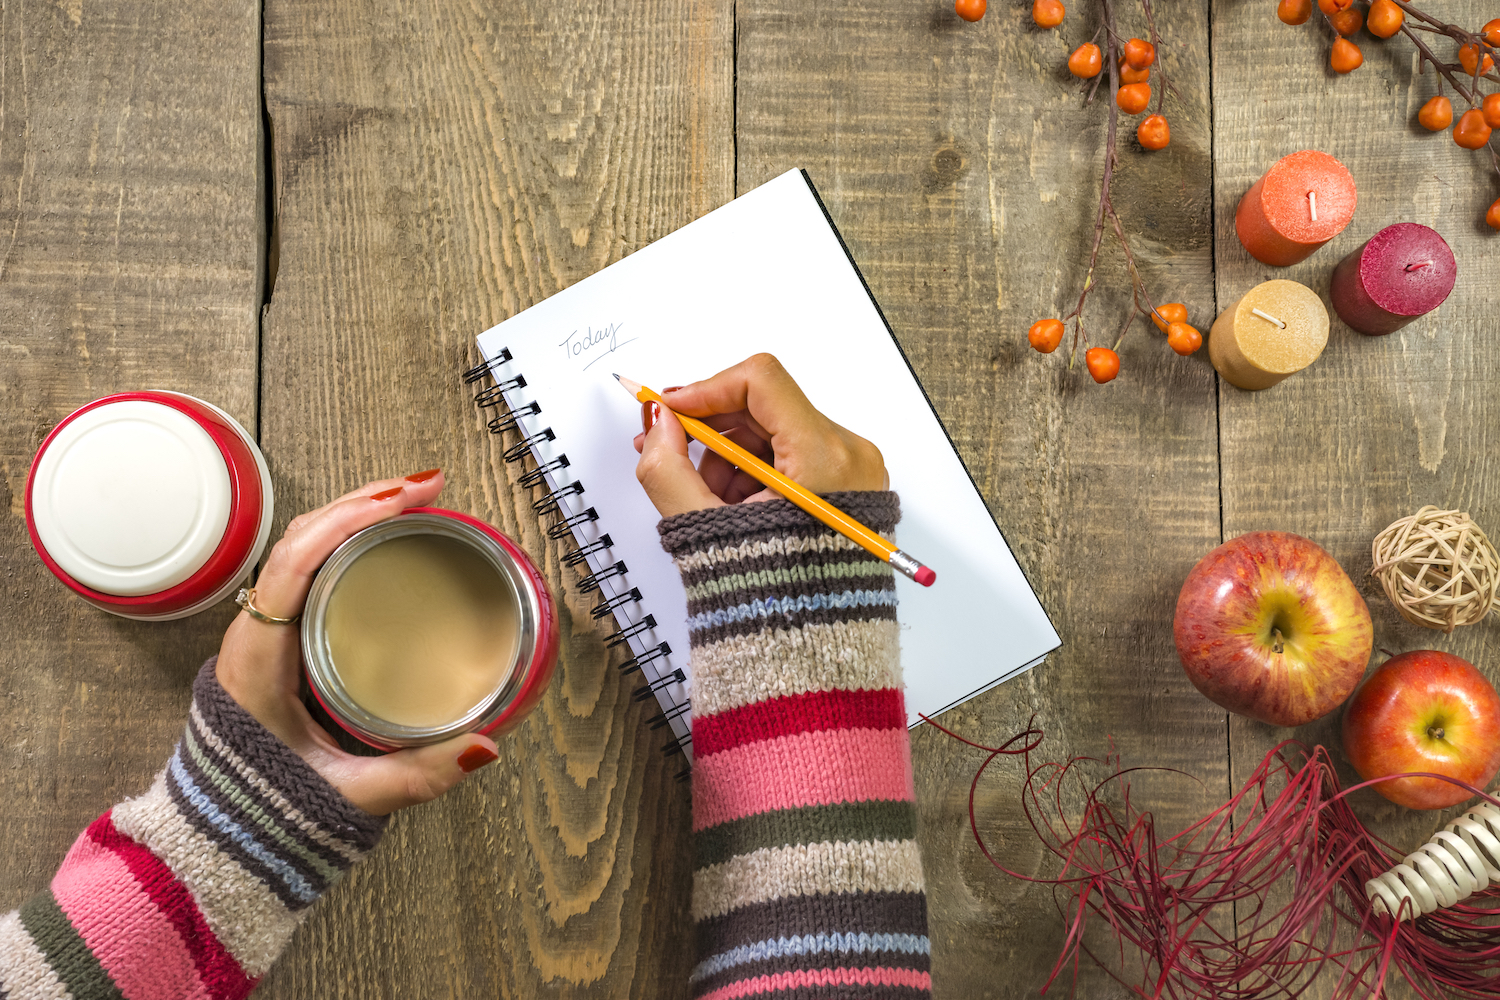 writing competitions, writing opportunities, writing contests